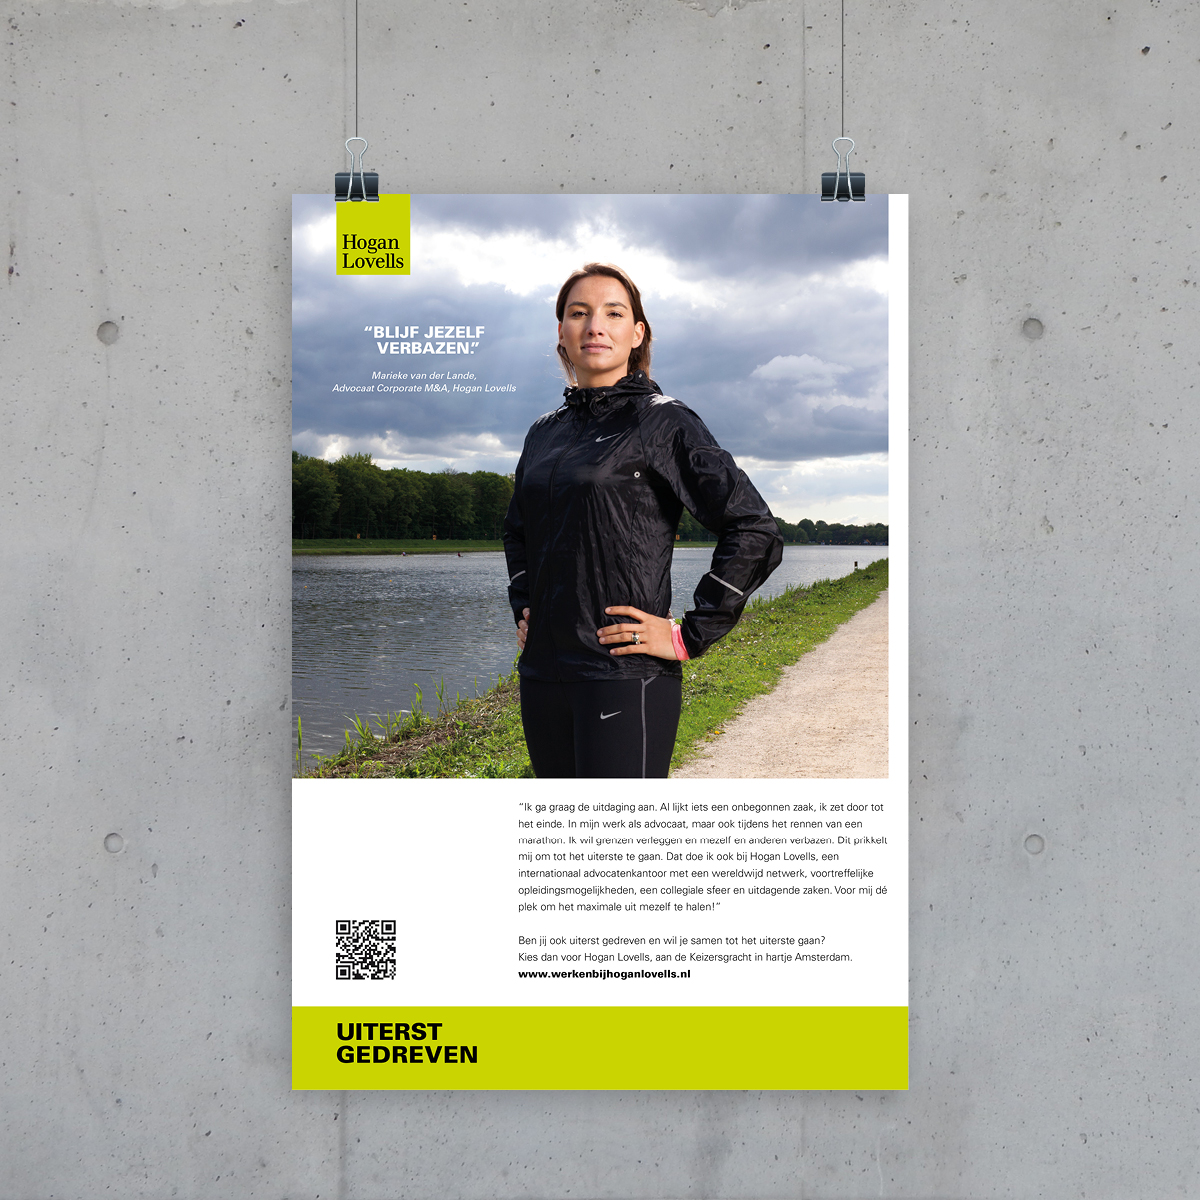 Hogan Lovells | Poster | Creative Digital Agency Puntkomma Nijmegen